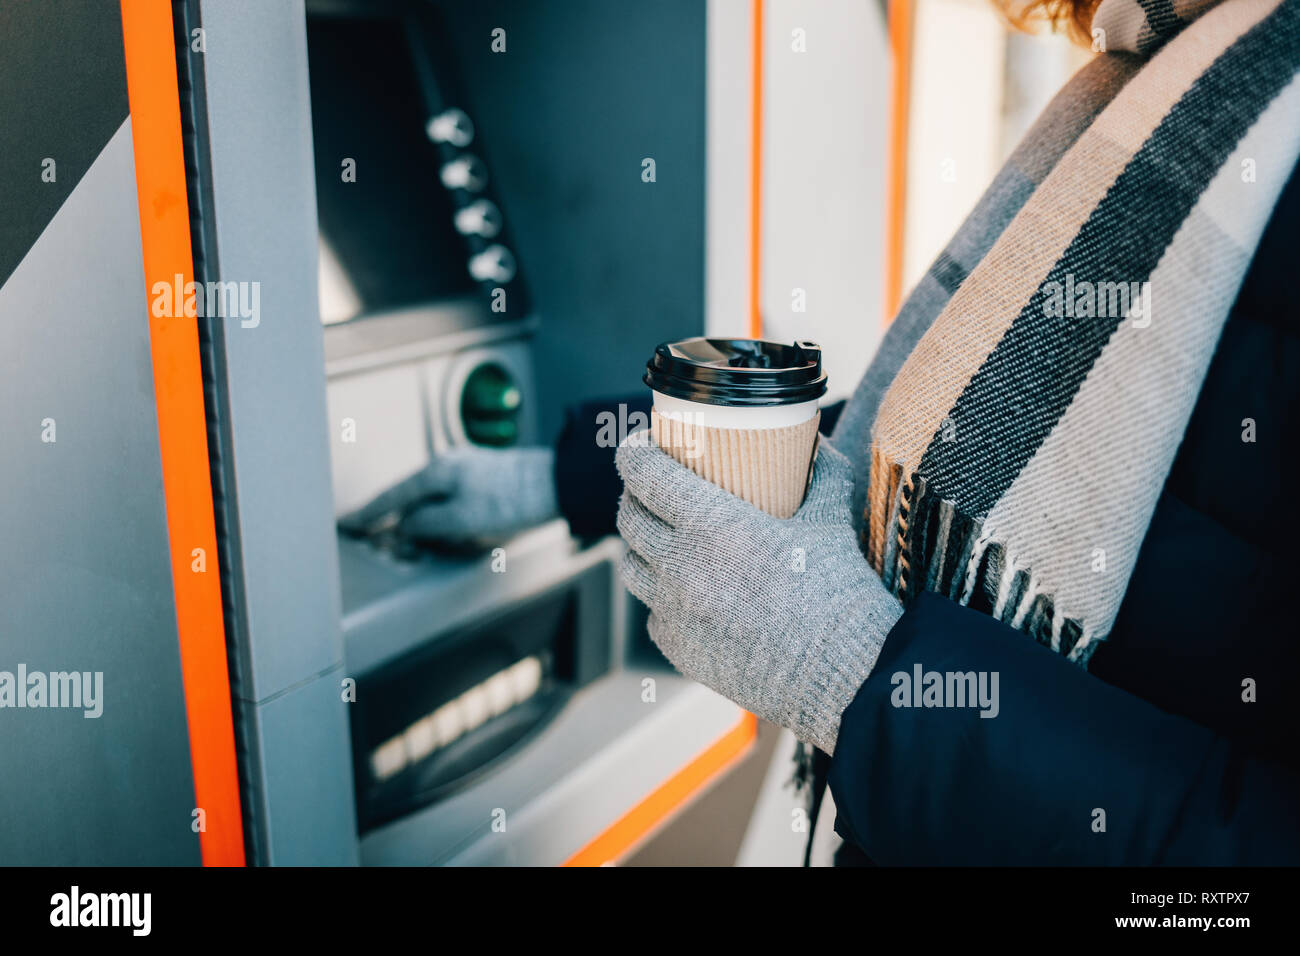 Close-up of young woman in warm clothing holding coffee and using an ATM on city street in winter day. - Stock Image